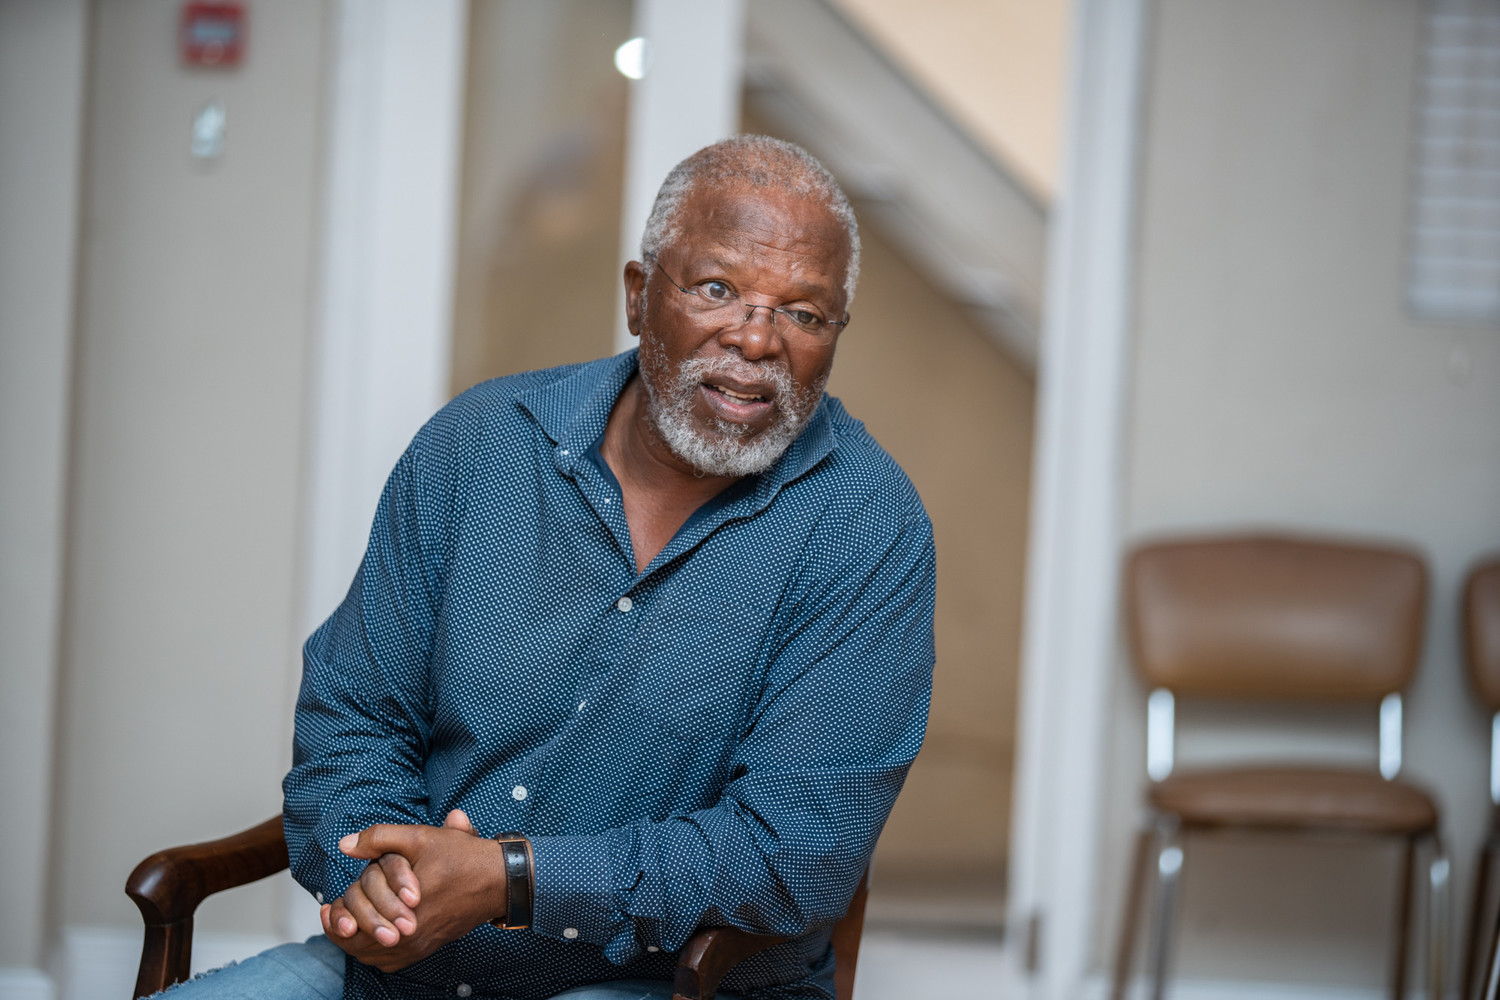 BWW Interview: Reviewing Democracy and Exploring Humanity in KUNENE AND THE KING with John Kani